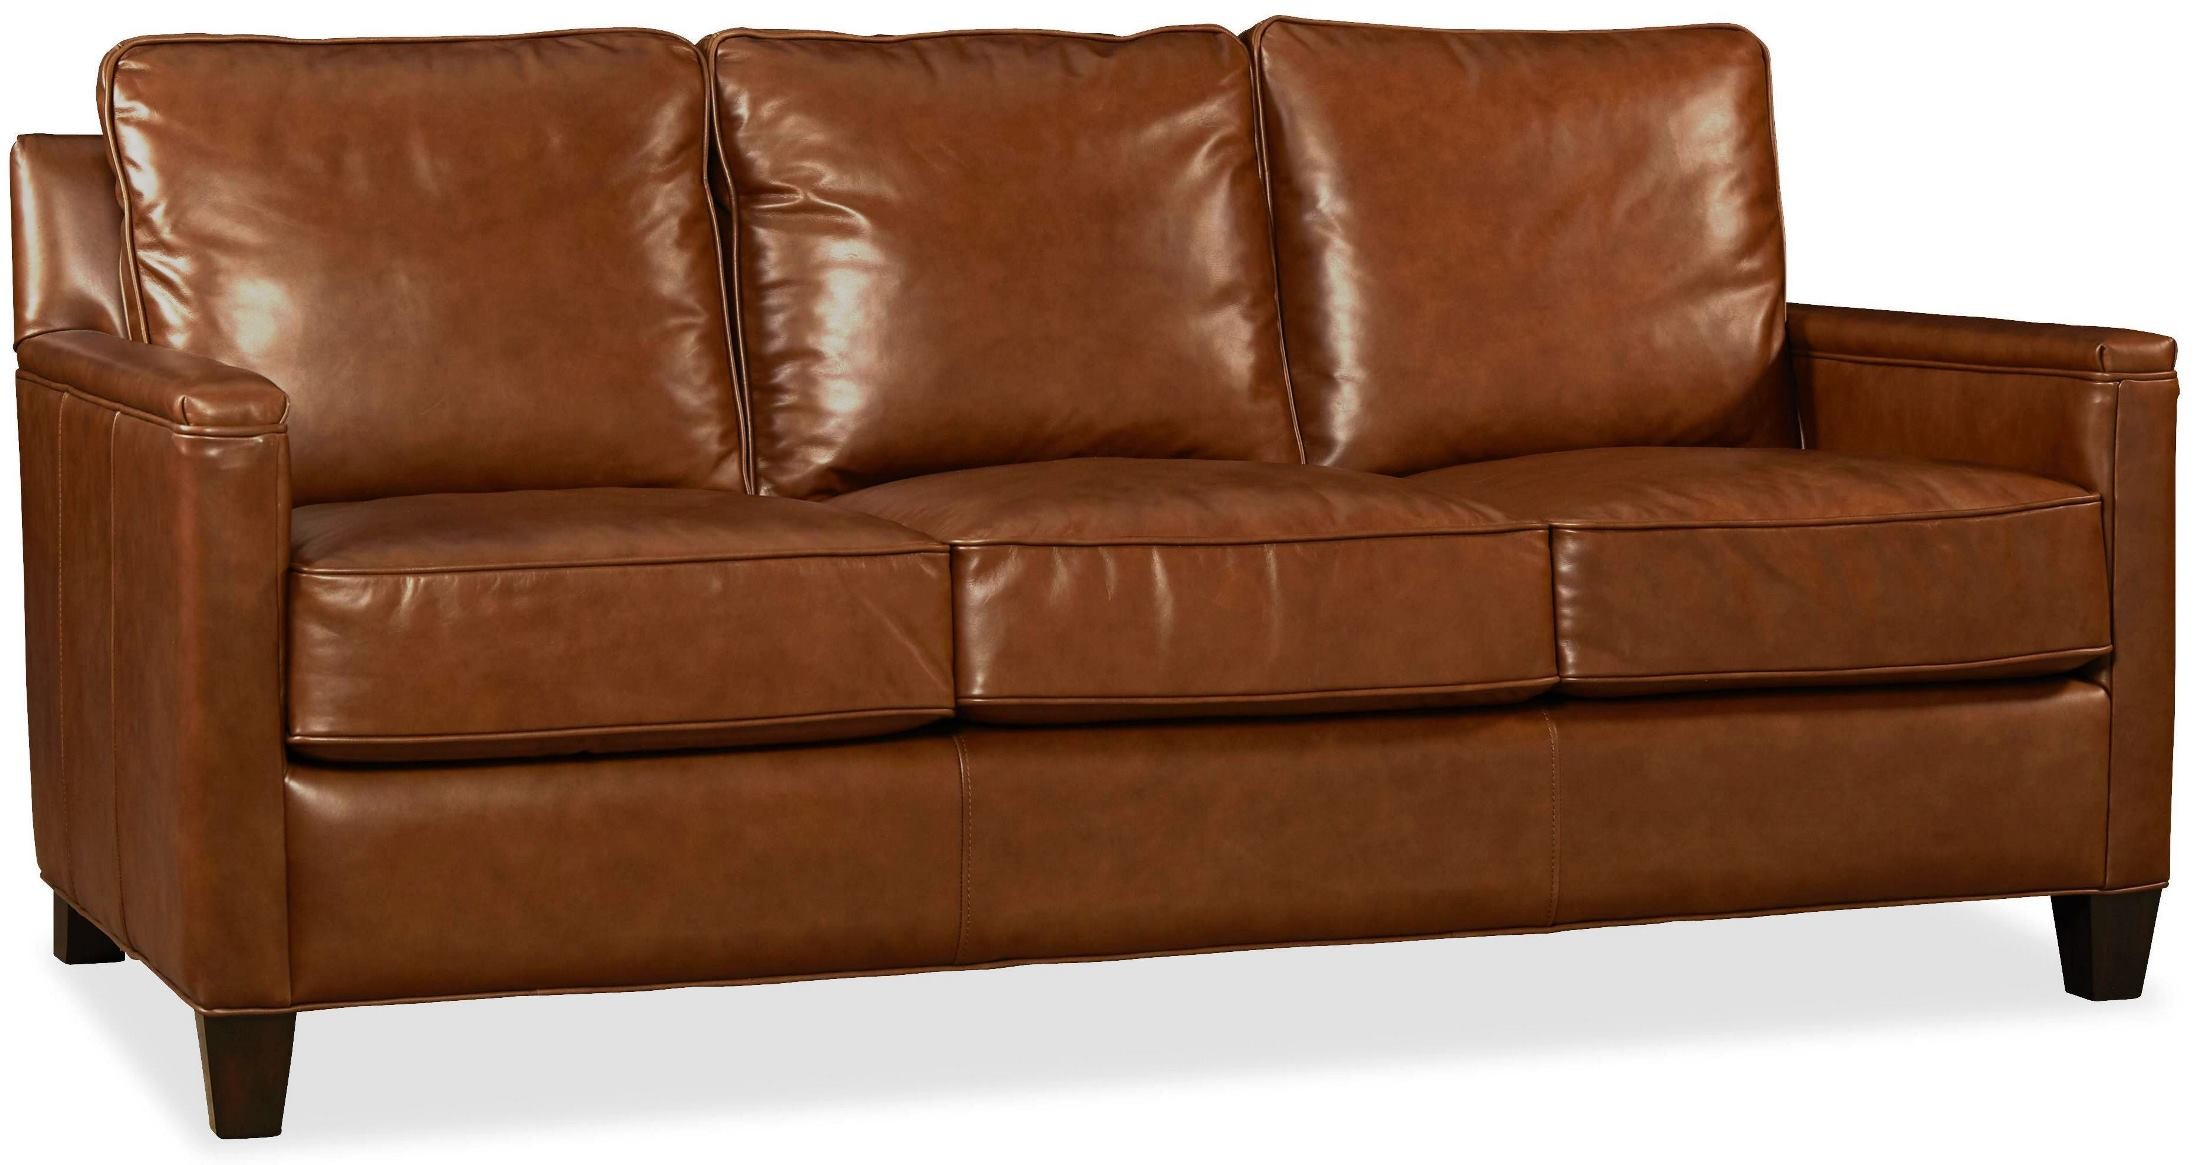 Alexander Berkshire Maple Sofa 152101 BM Palatial